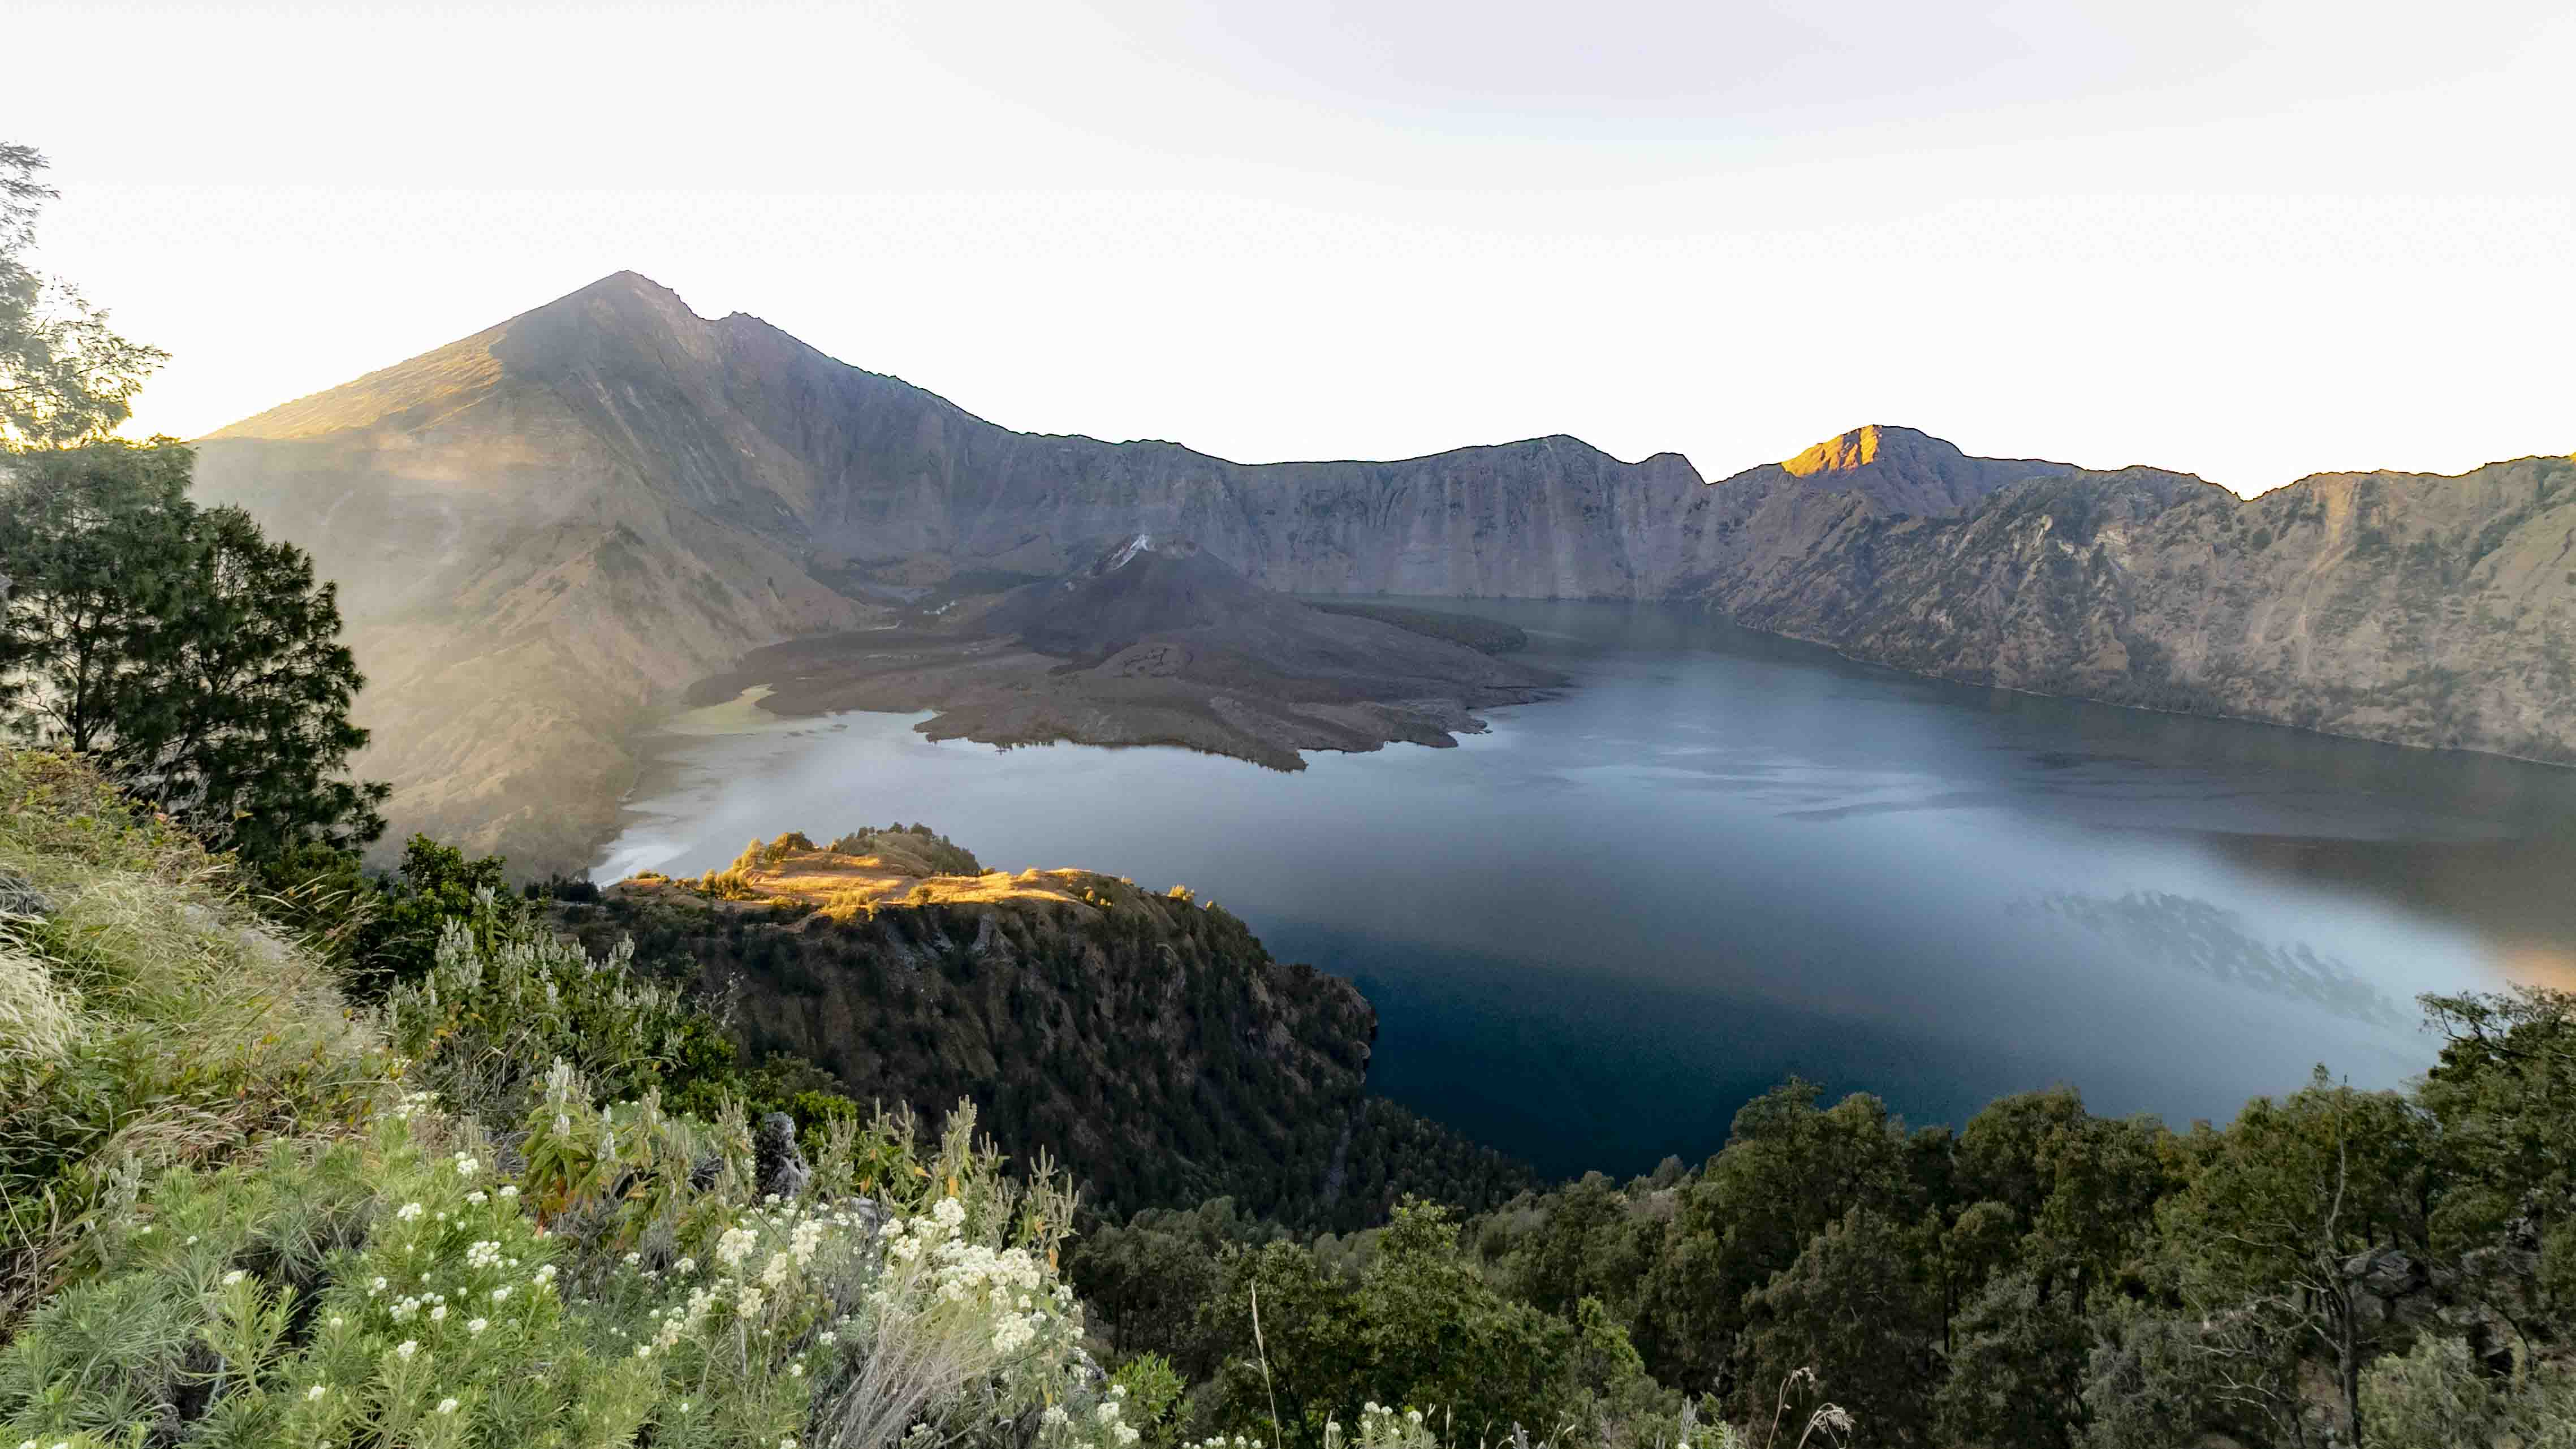 Mt. Rinjani at sunrise